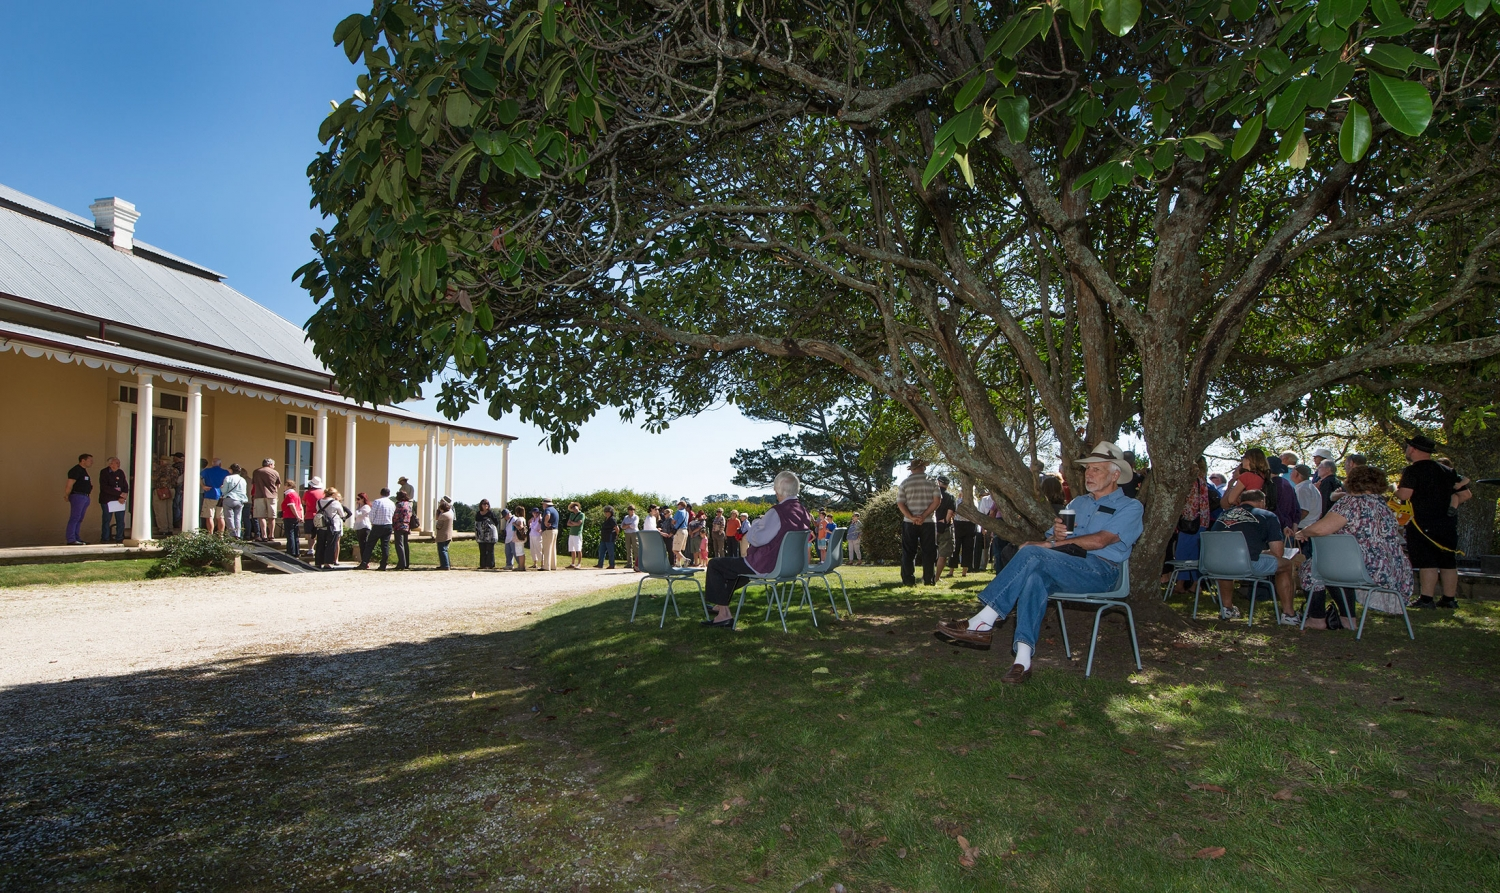 Colour photo of historic house with wide verandahs with visitors sitting on chairs under a large tree and inspecting the grounds.